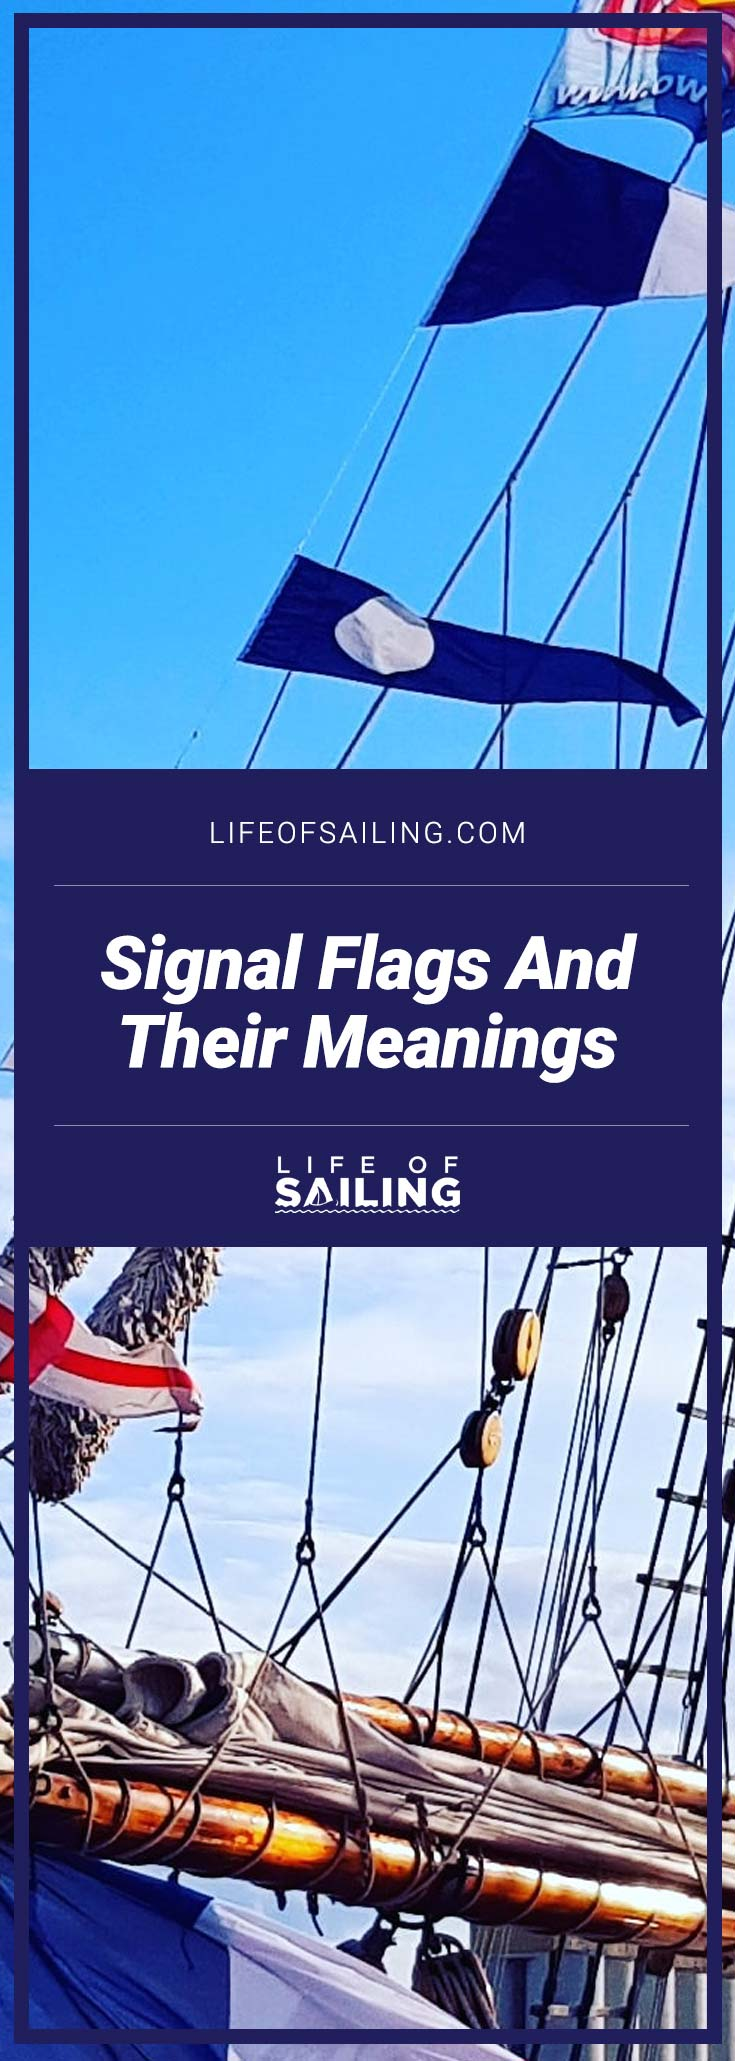 Signal Flags And Their Meanings